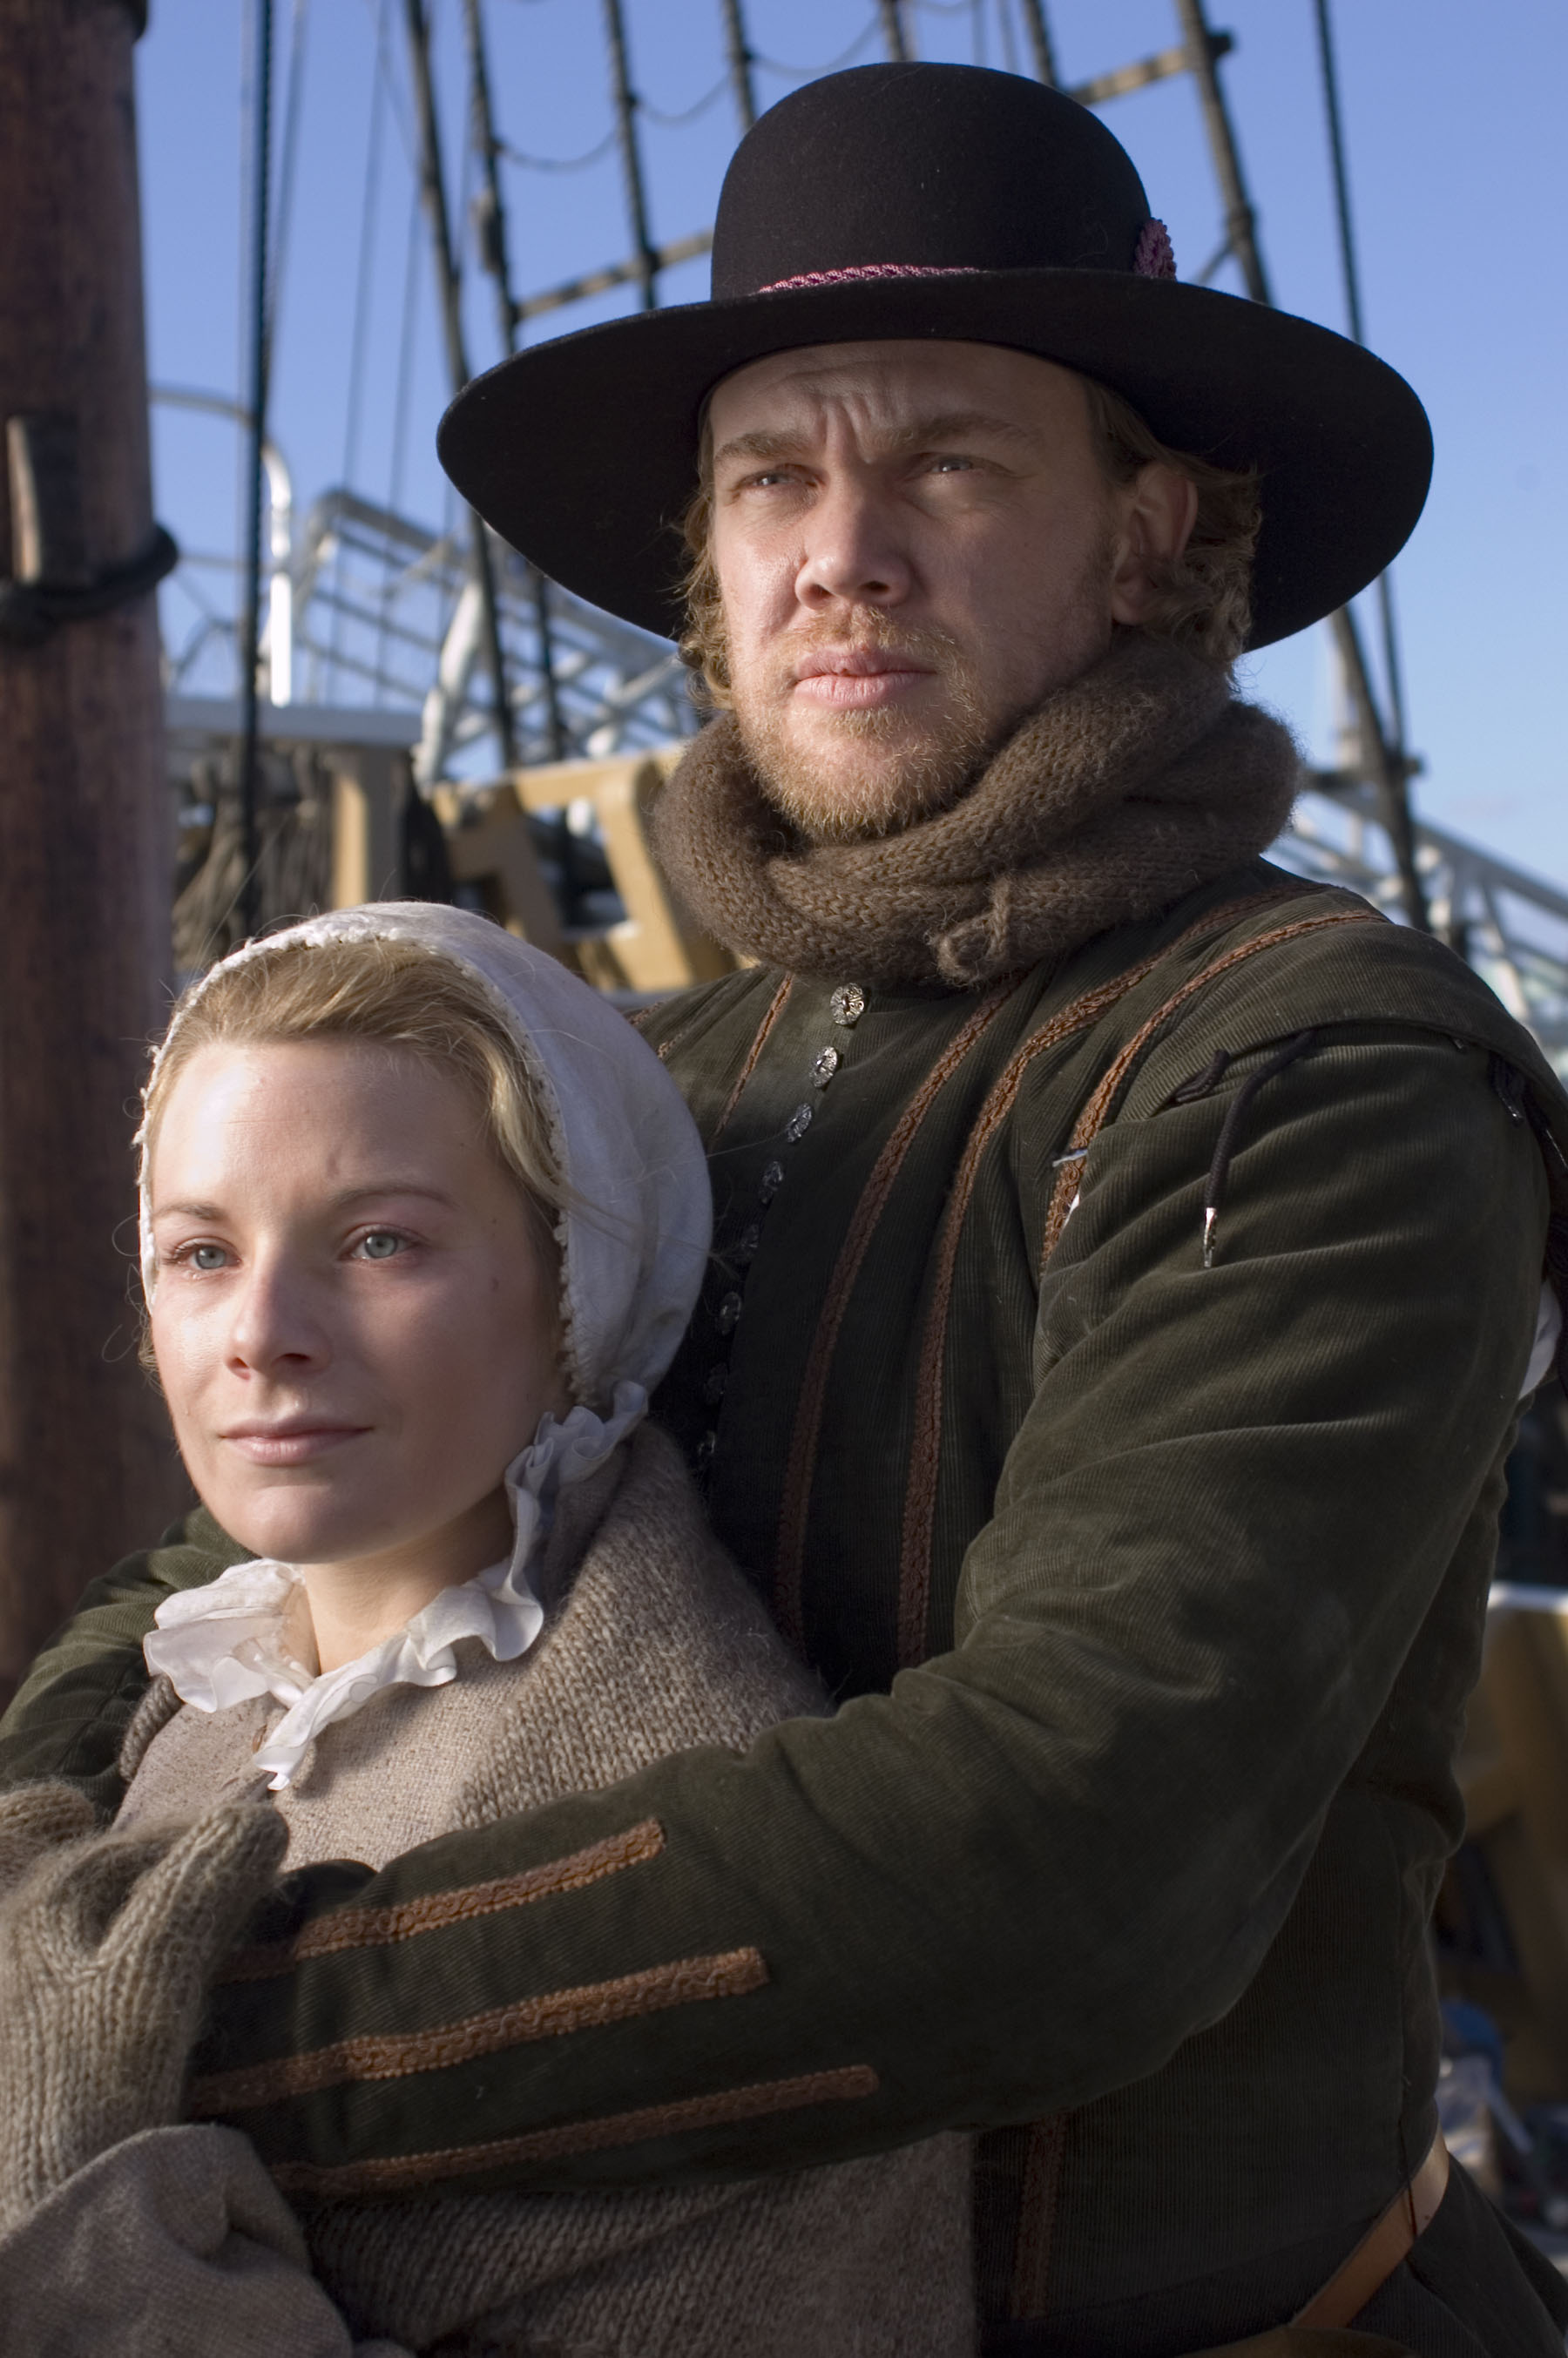 """William and Dorothy (May) Bradford, as portrayed by the History Channel's documentary """" Desperate Crossing ."""" Promotional image courtesy of Lone Wolf Documentary Group."""